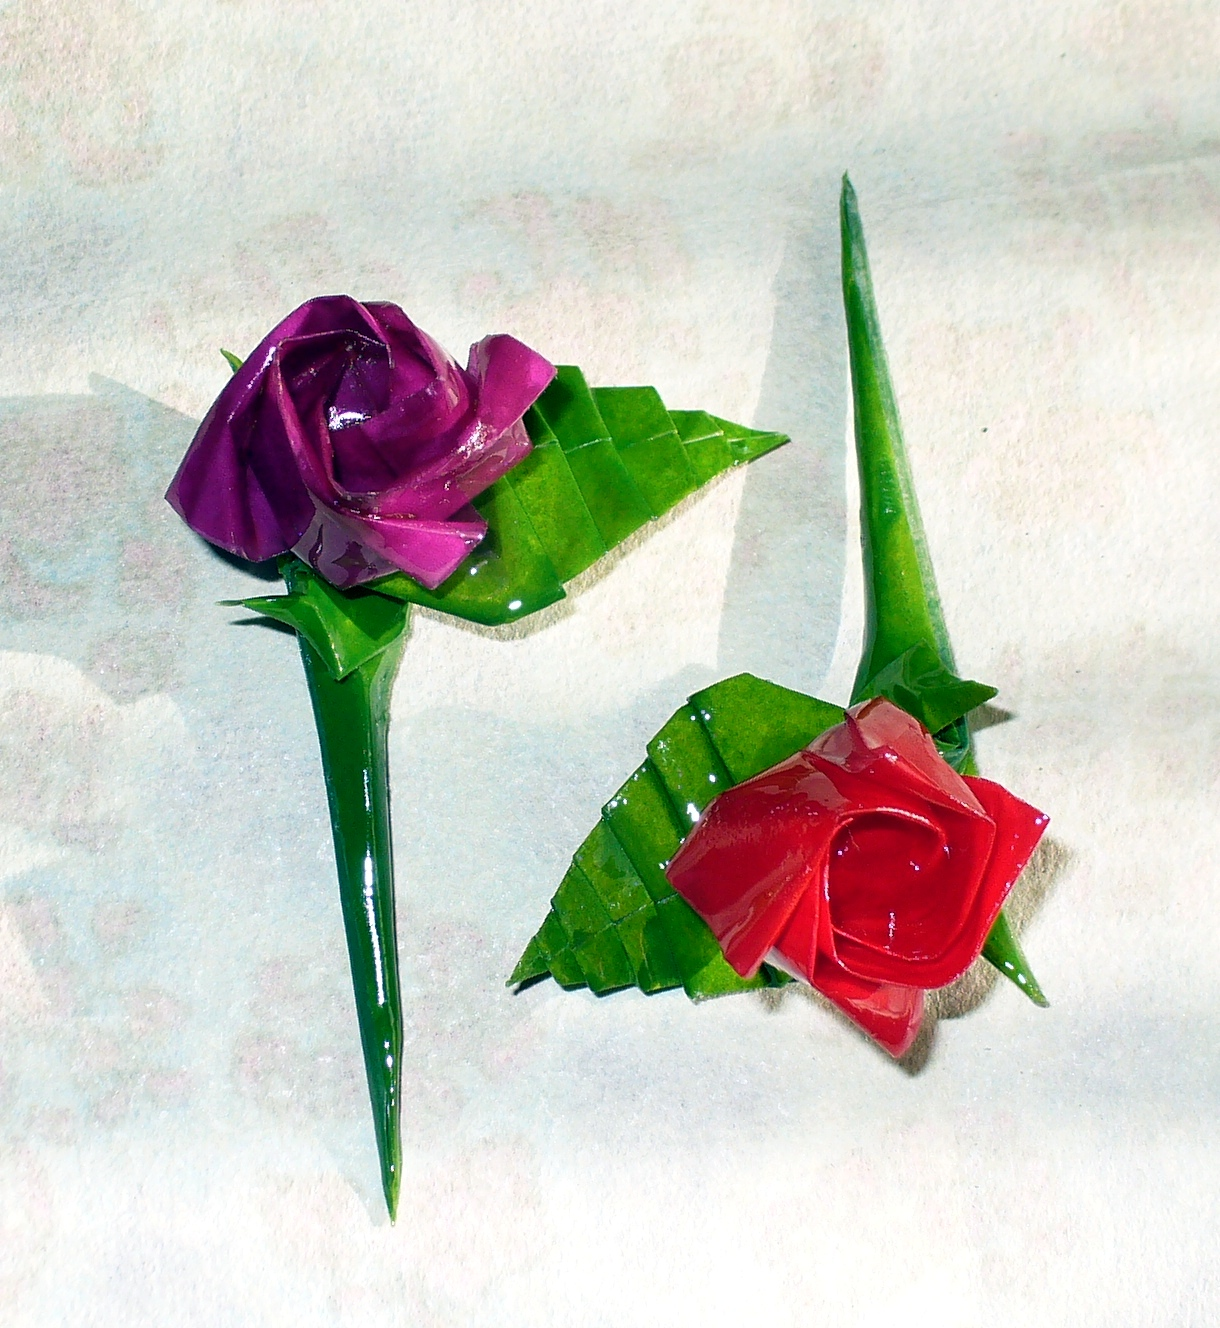 Rosa simple Rose by Figuer